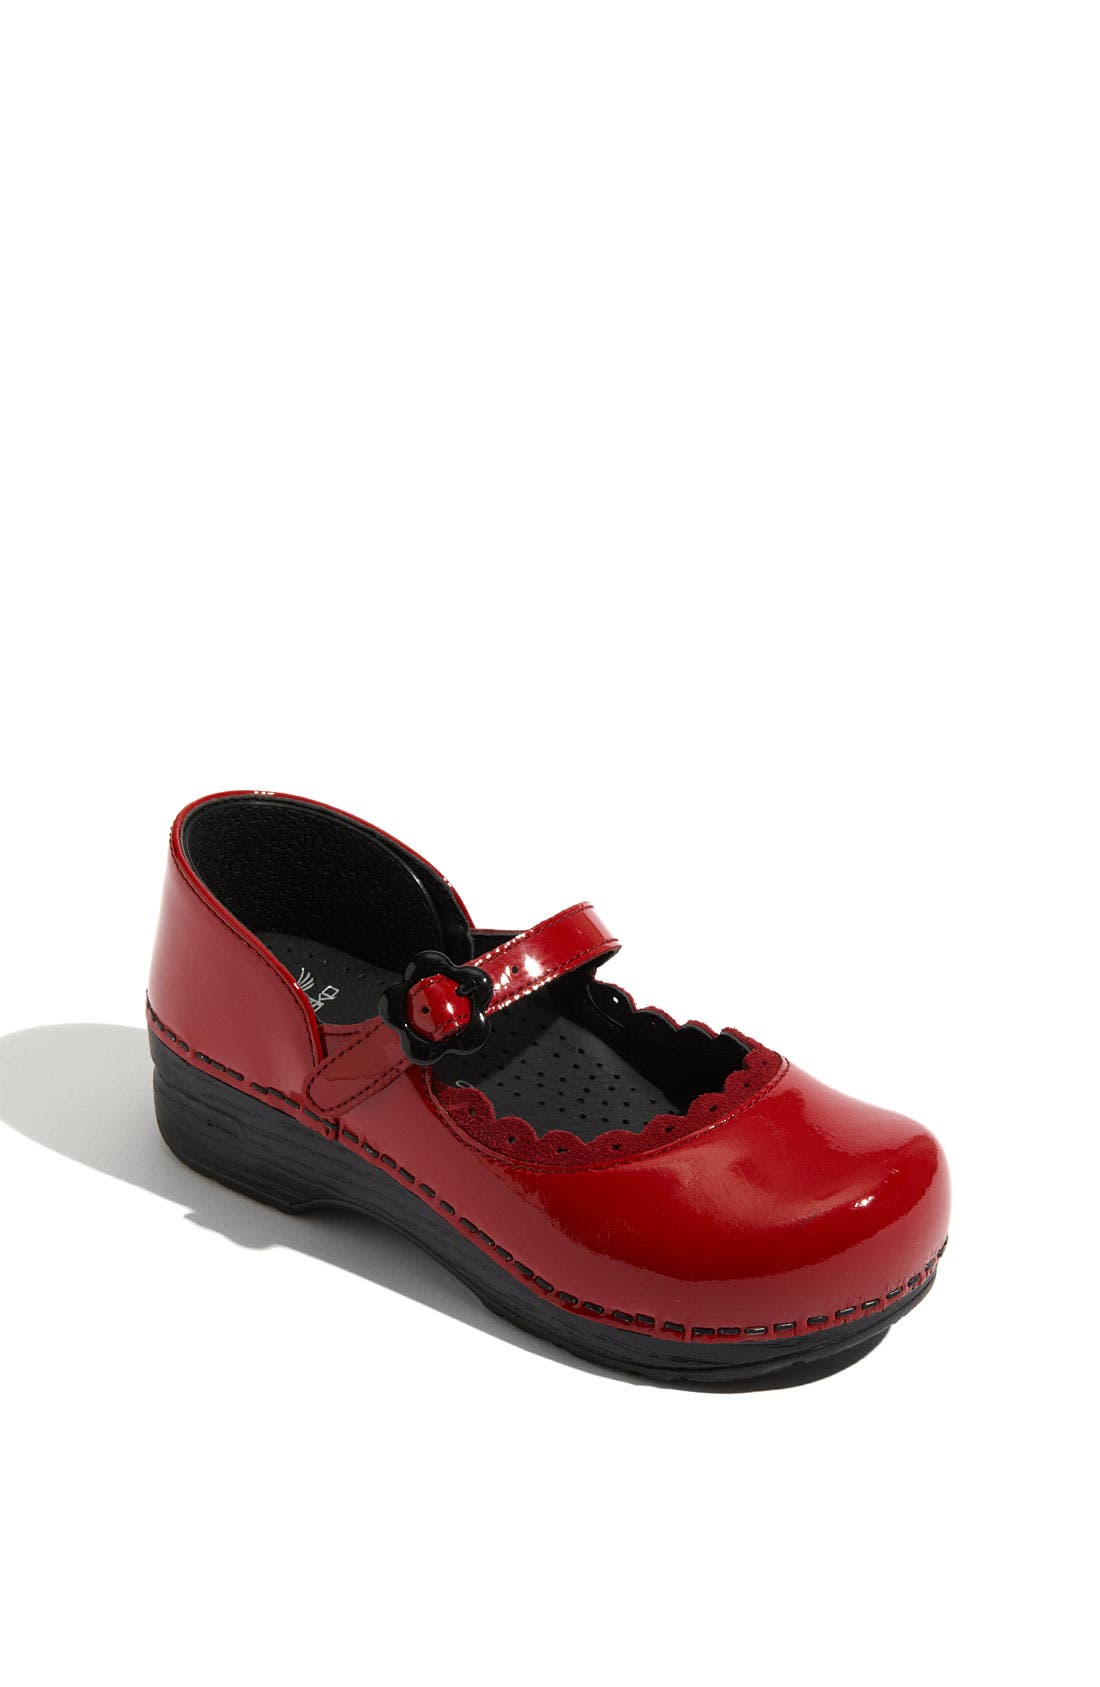 Alternate Image 1 Selected - Dansko 'Jill' Mary Jane Clog (Toddler, Little Kid & Big Kid)